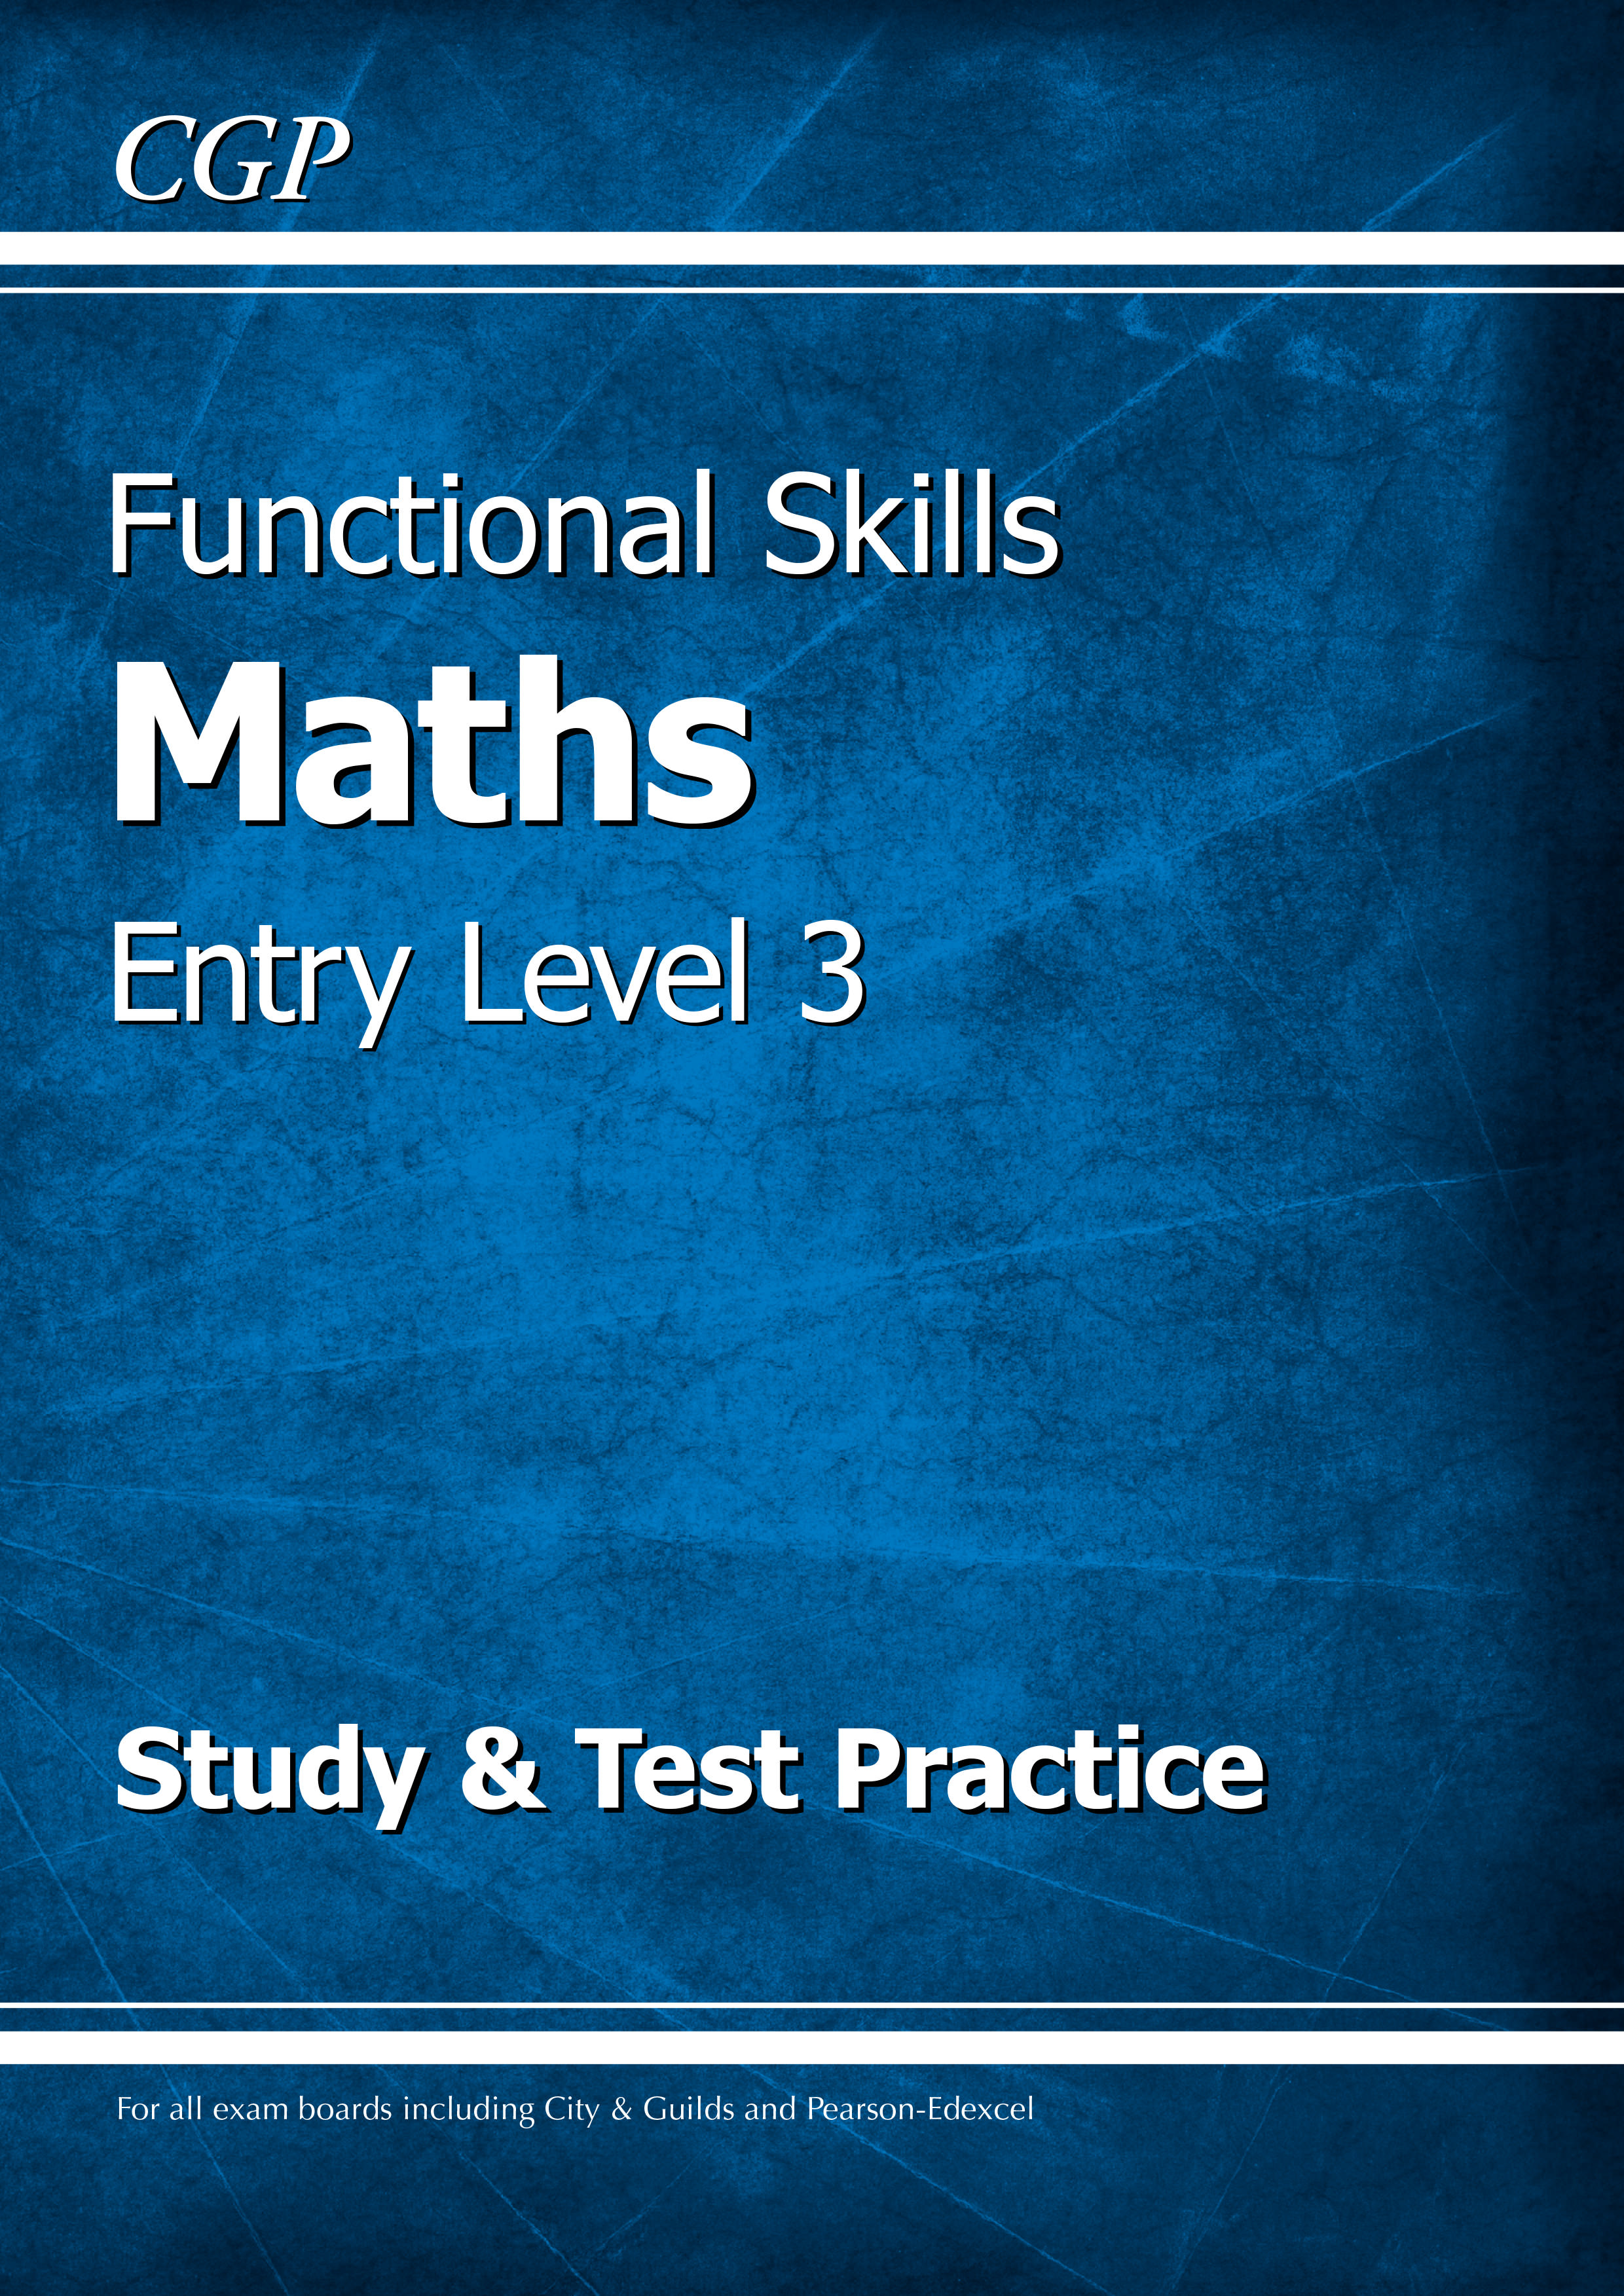 M3SRA2DK - Functional Skills Maths Entry Level 3 - Study & Test Practice